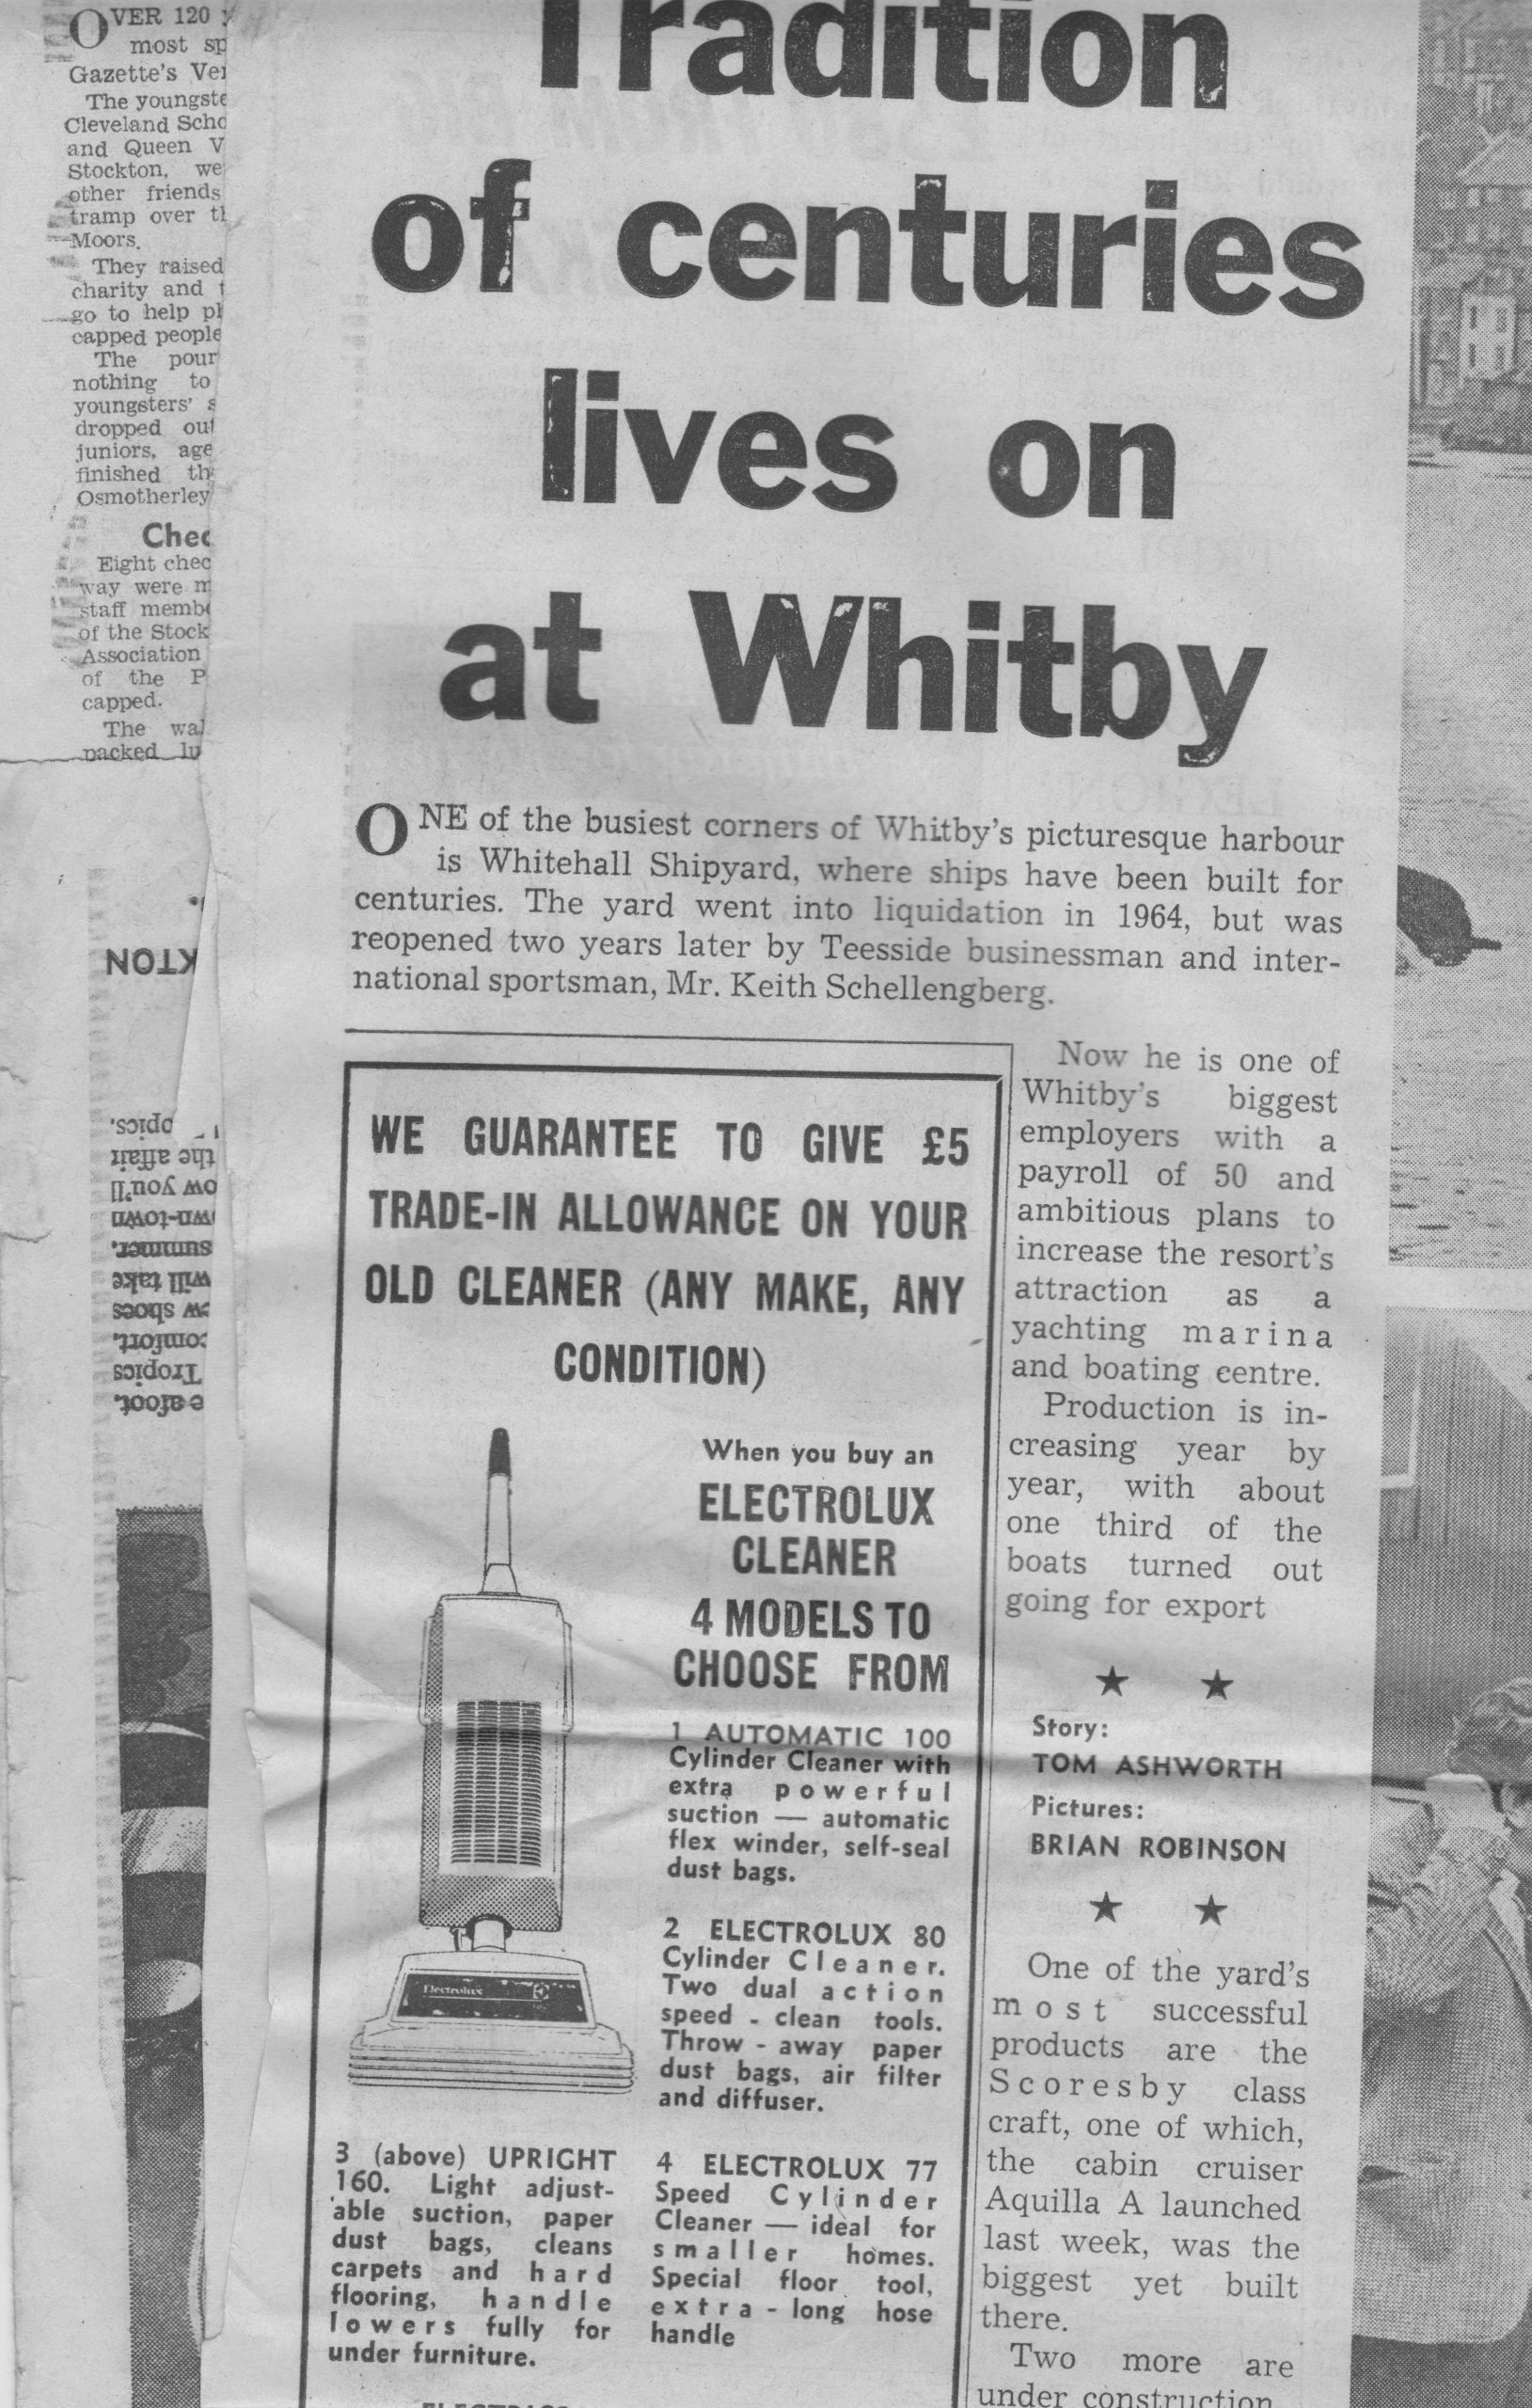 Full page feature on Whitby still building ships (pictures not reproducing well)